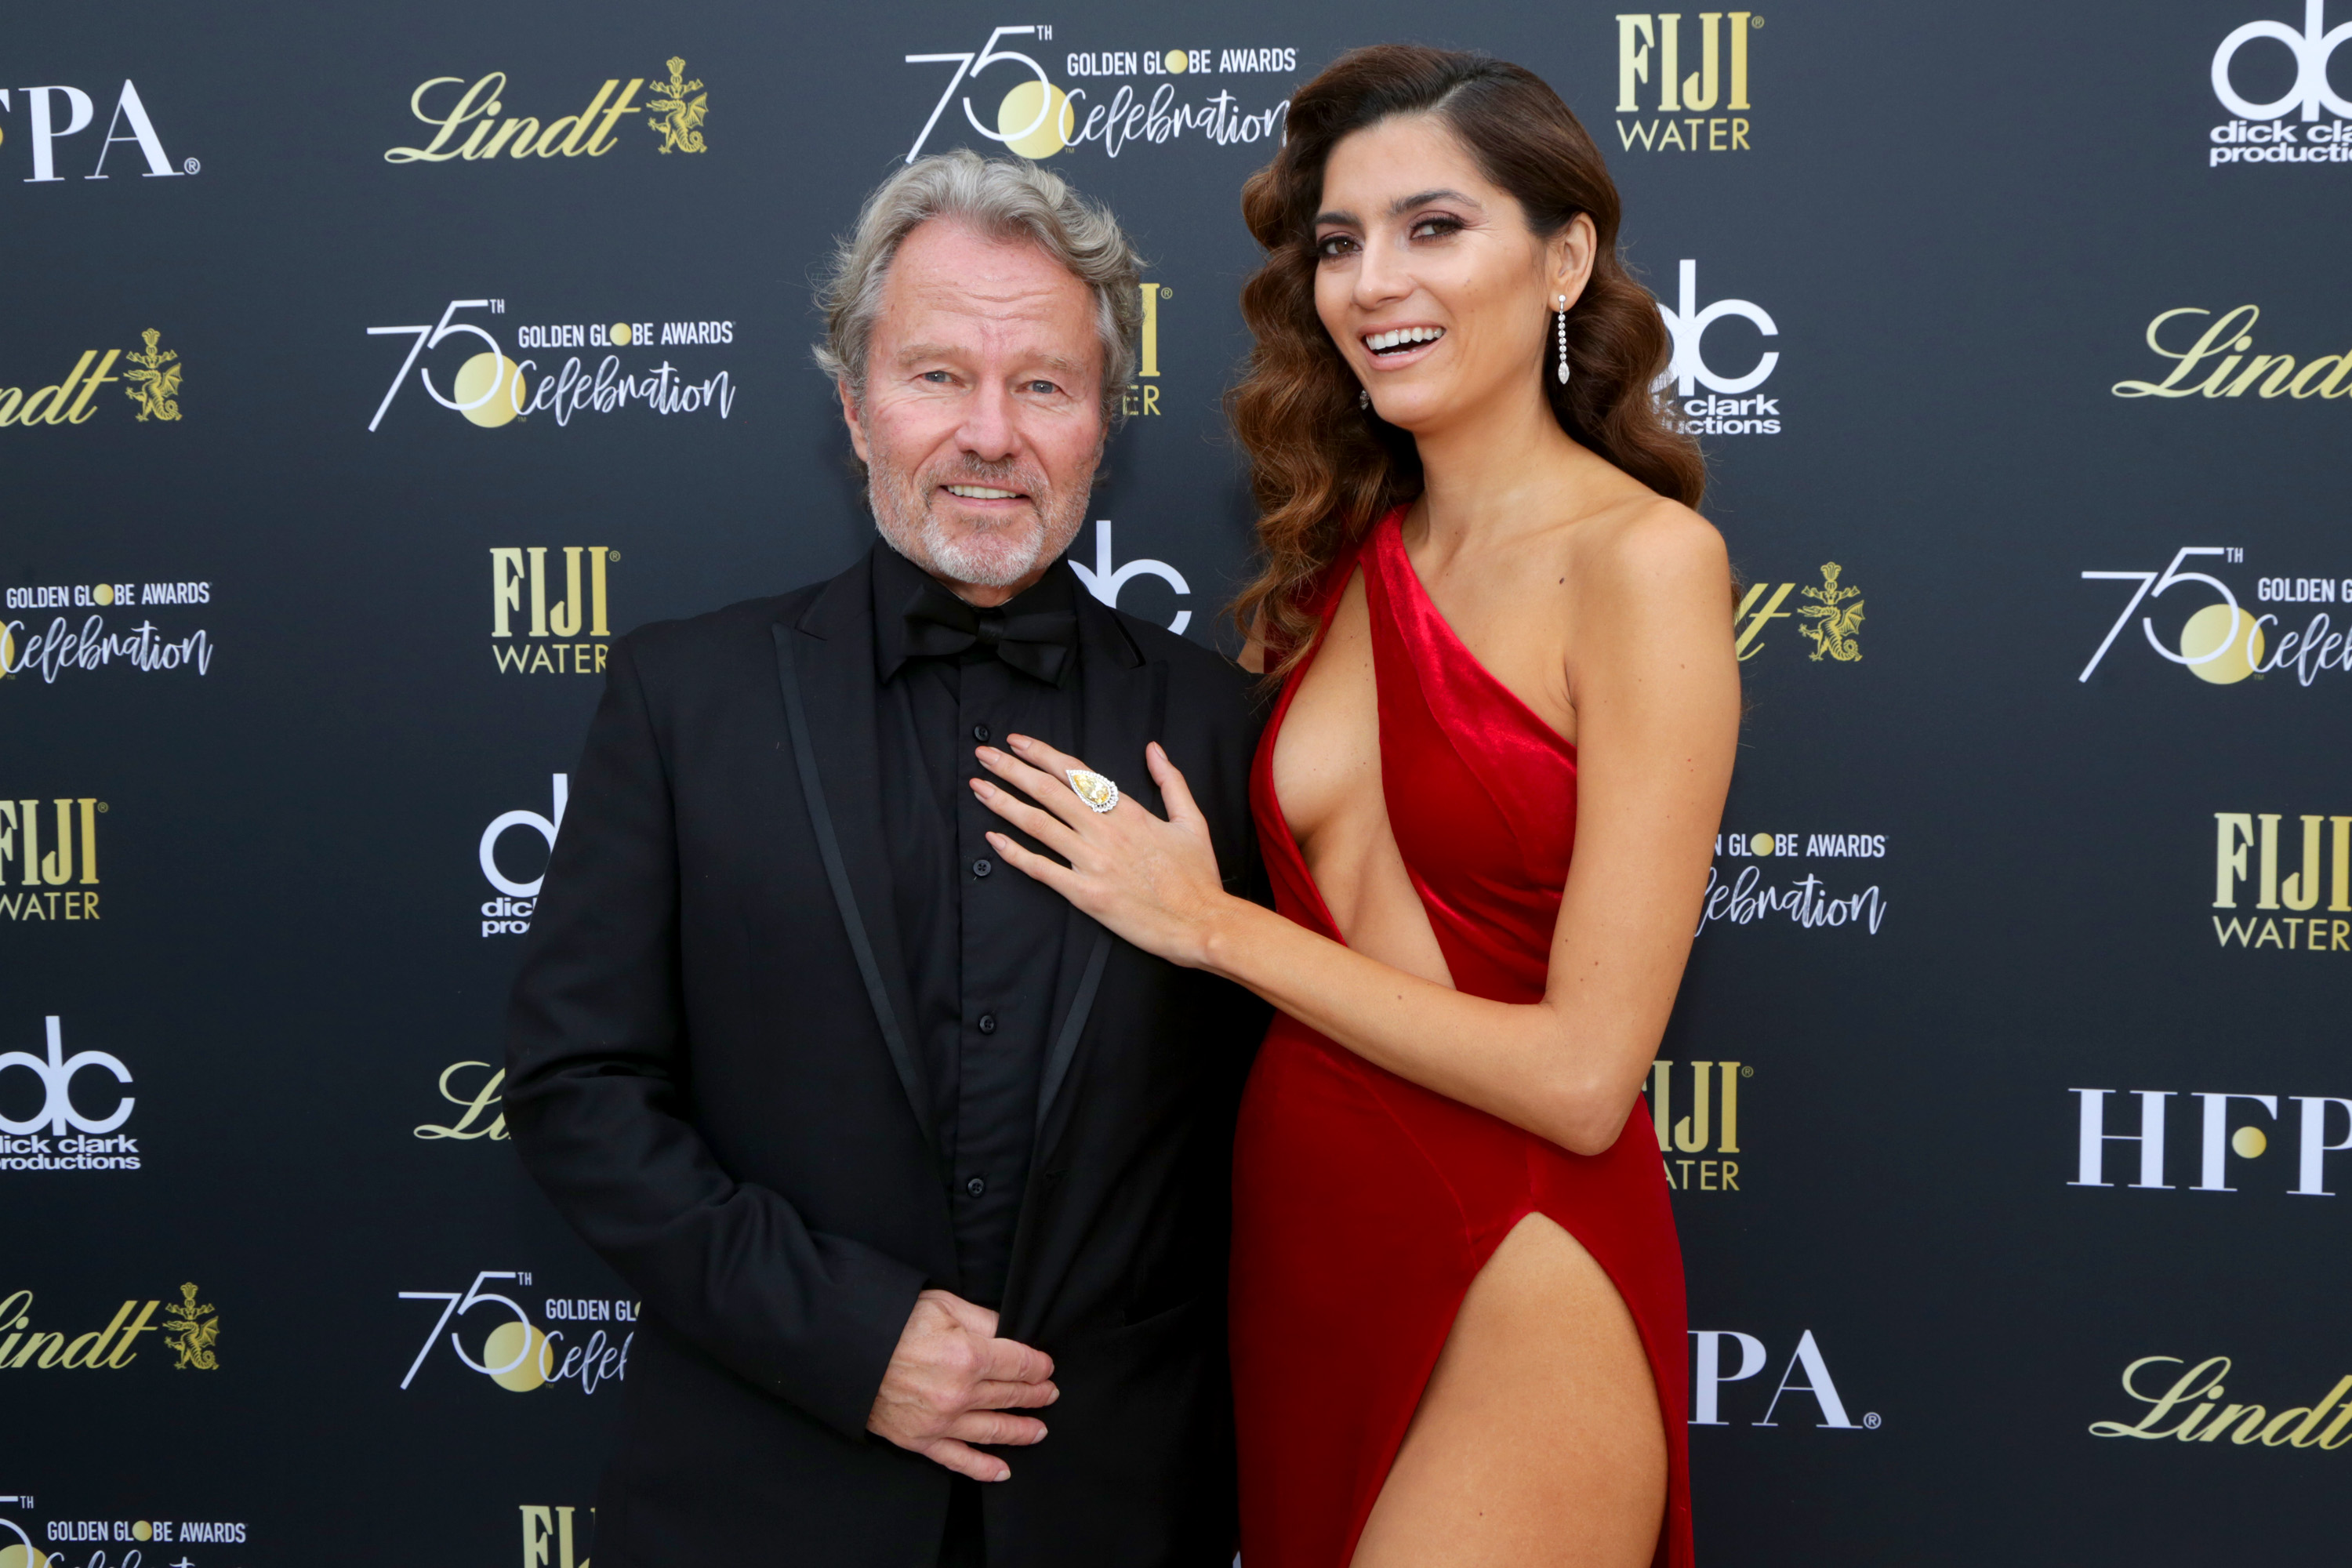 Actress Blanca Blanco Sparks Big Debate After Wearing Red to Golden Globes